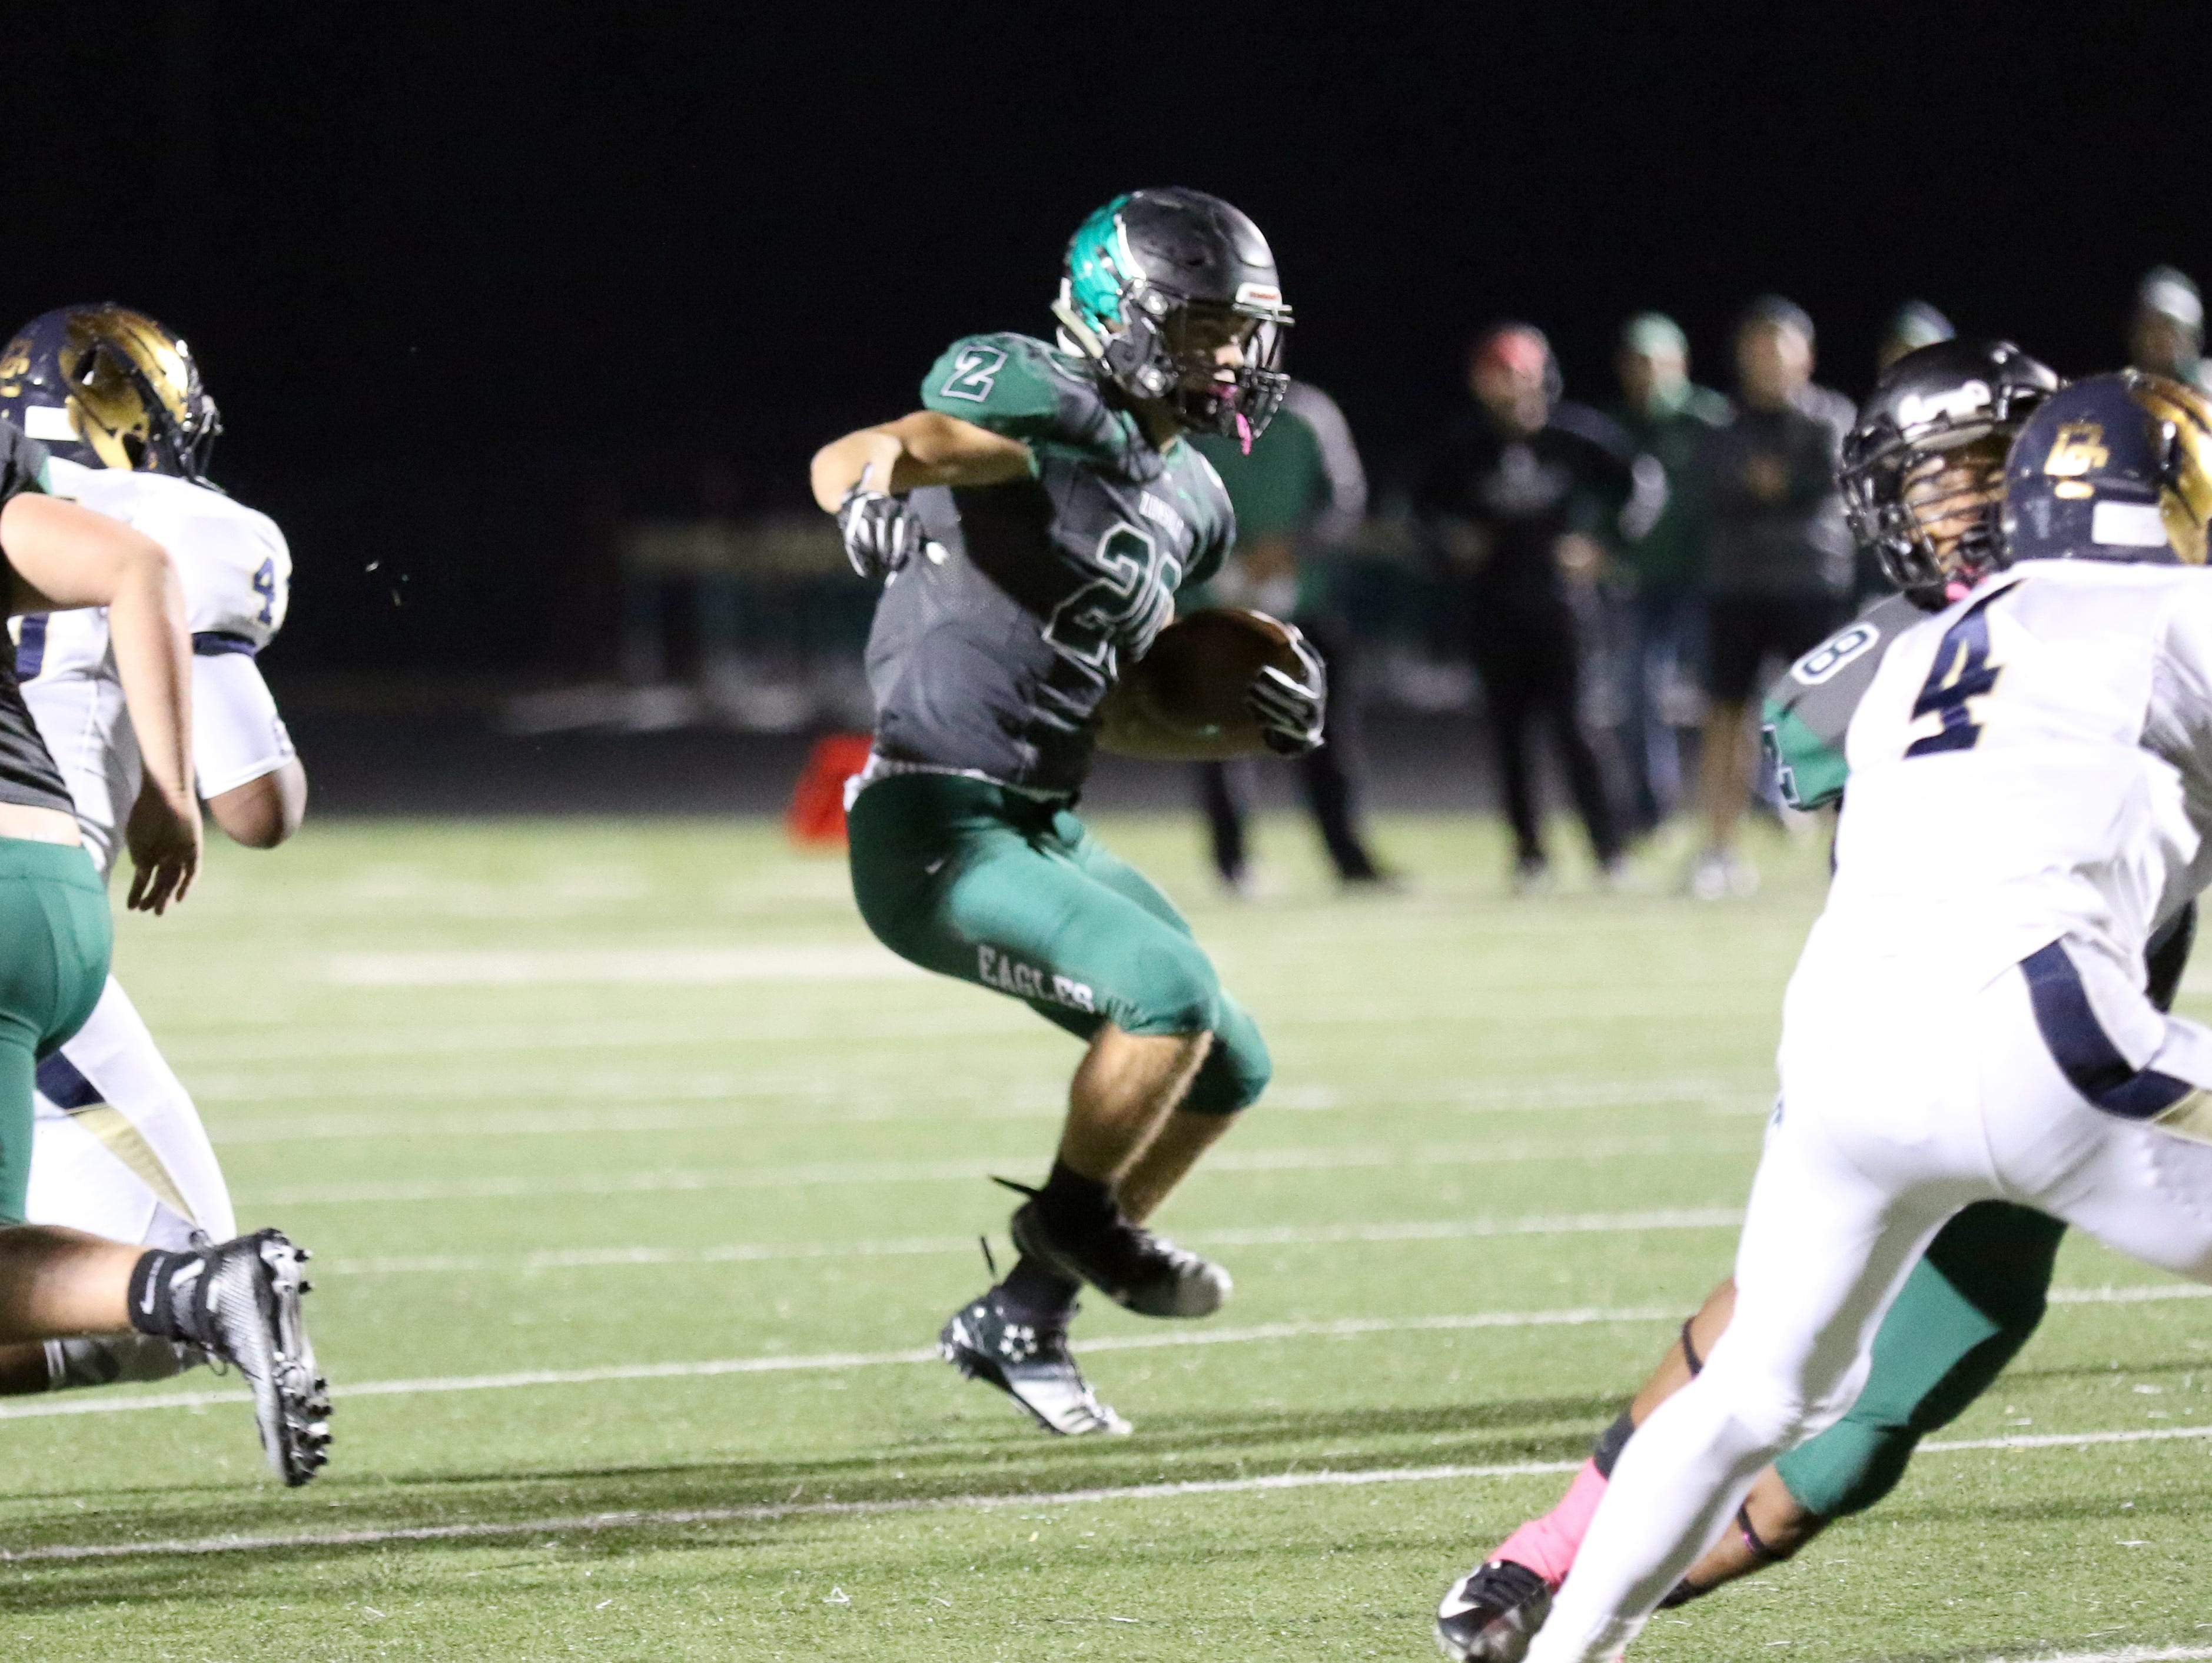 Zionsville's Brenden Mikesell rushed for four scores in the Eagles' win over Decatur Central on Friday.